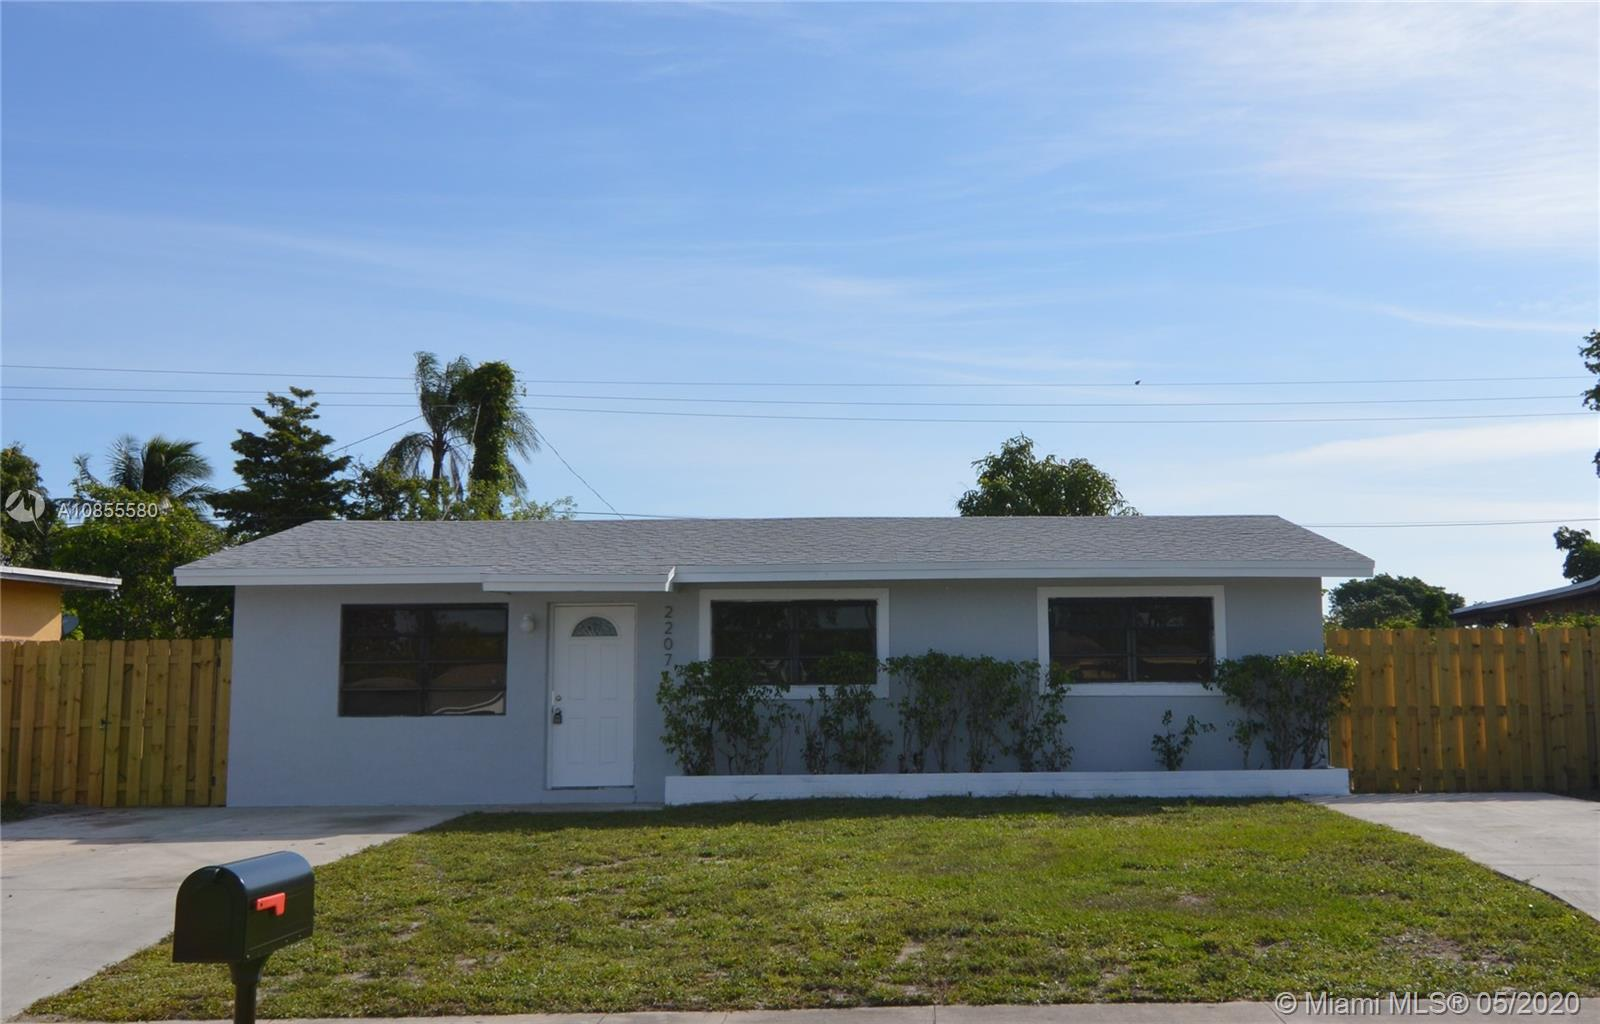 2207 SW 68th Ter, Miramar, Florida 33023, 4 Bedrooms Bedrooms, ,2 BathroomsBathrooms,Residential,For Sale,2207 SW 68th Ter,A10855580